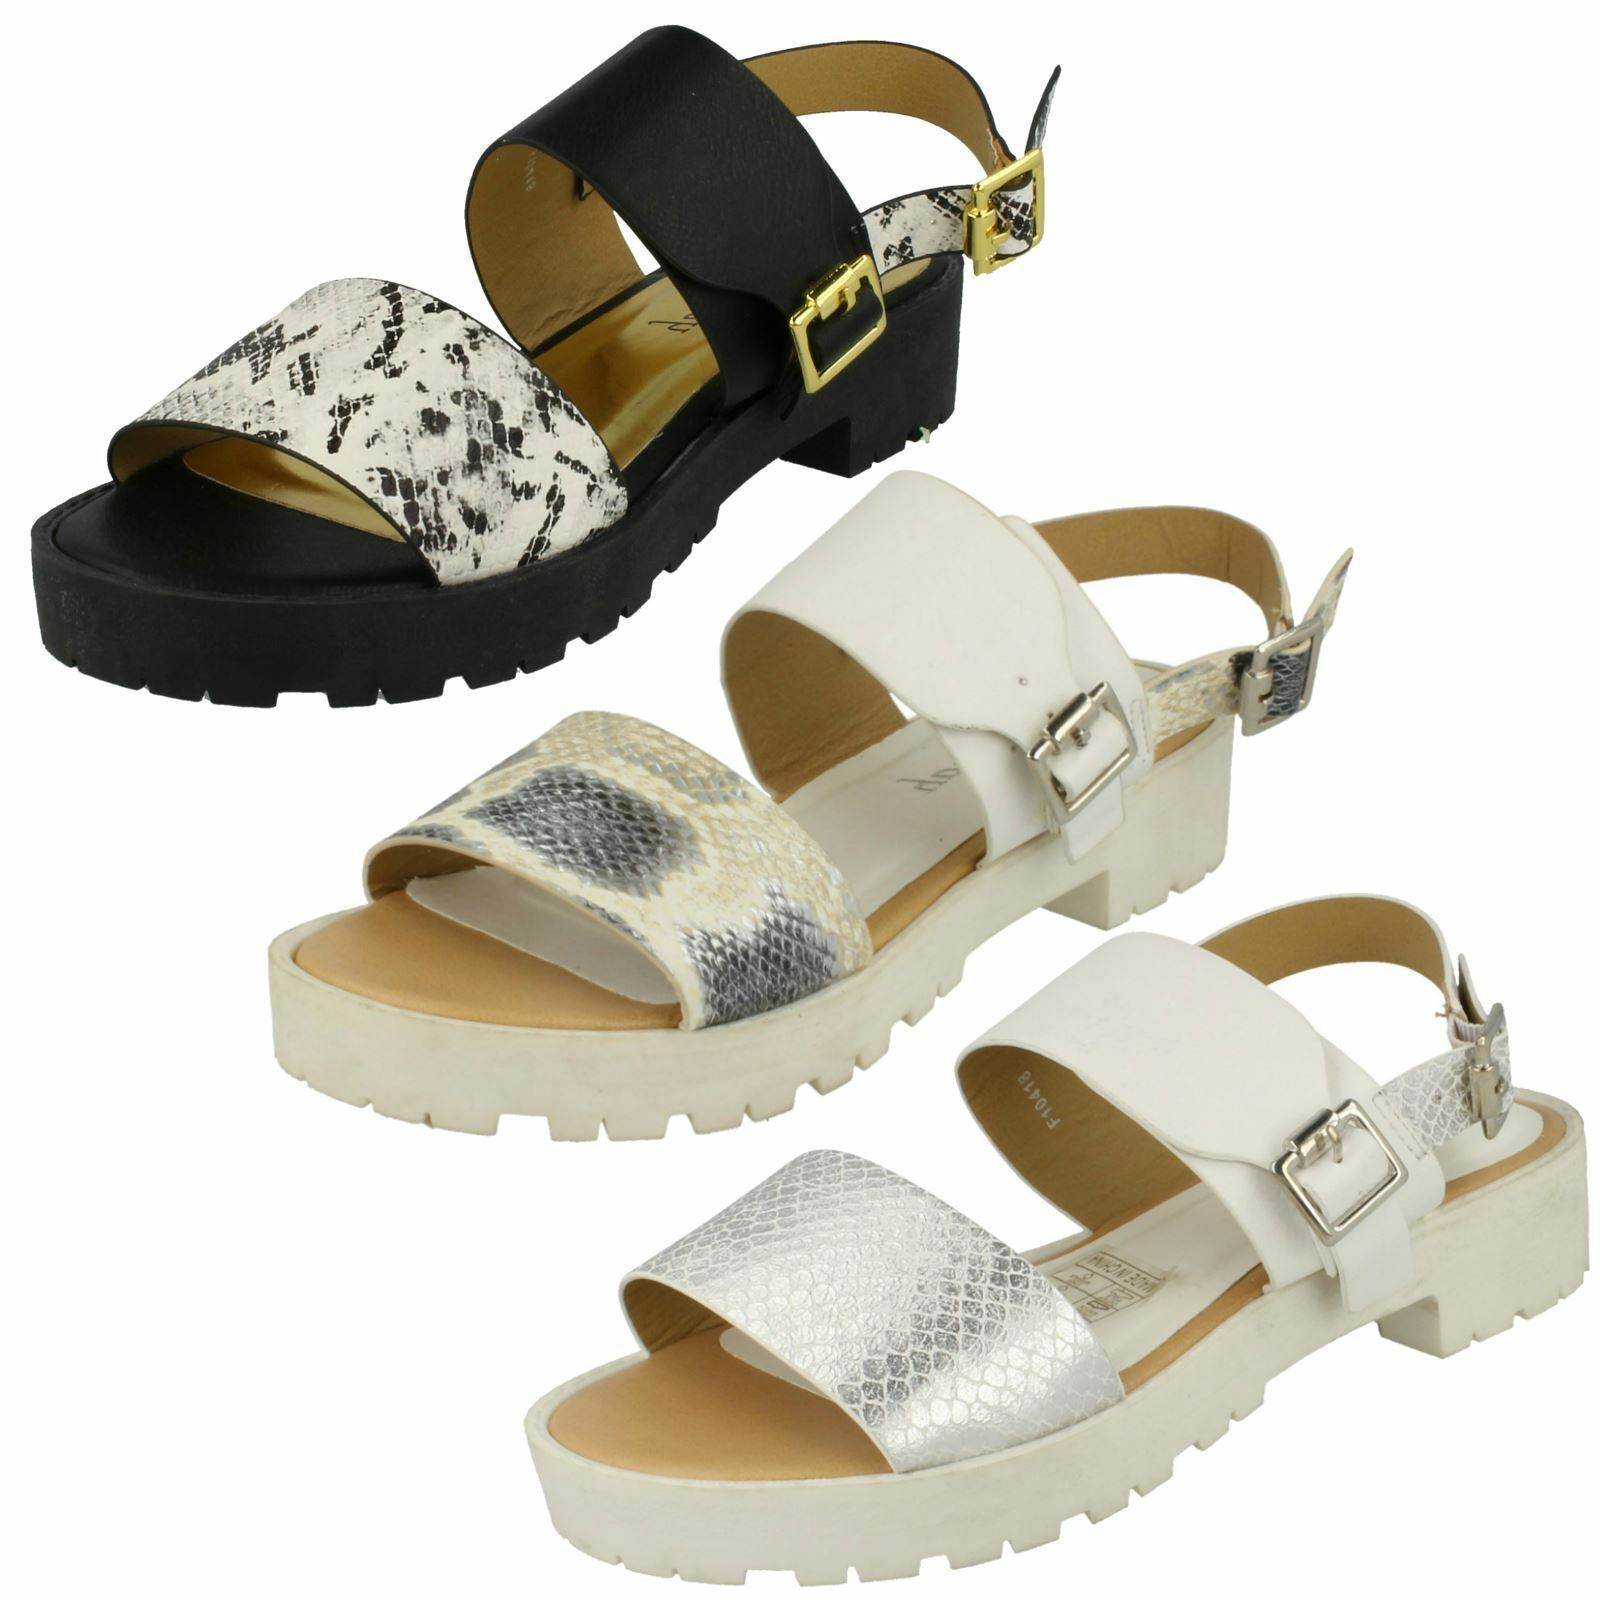 Gentleman/Lady Savannah Ladies Buckle Strap Retro Sandals Reputation economy first High quality and economy Reputation cheaper d58353